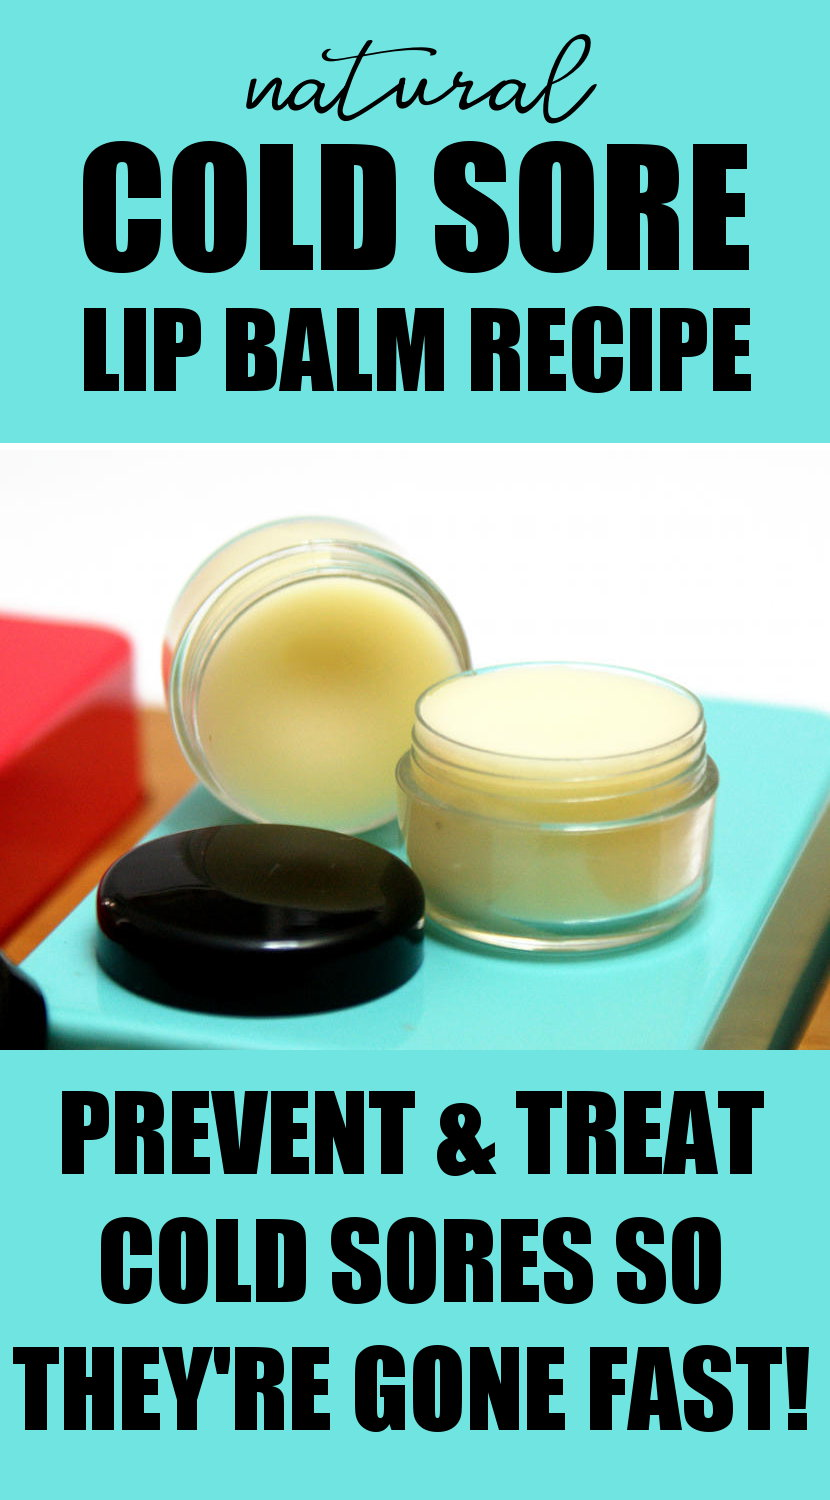 Best Natural Lip Balm For Cold Sores